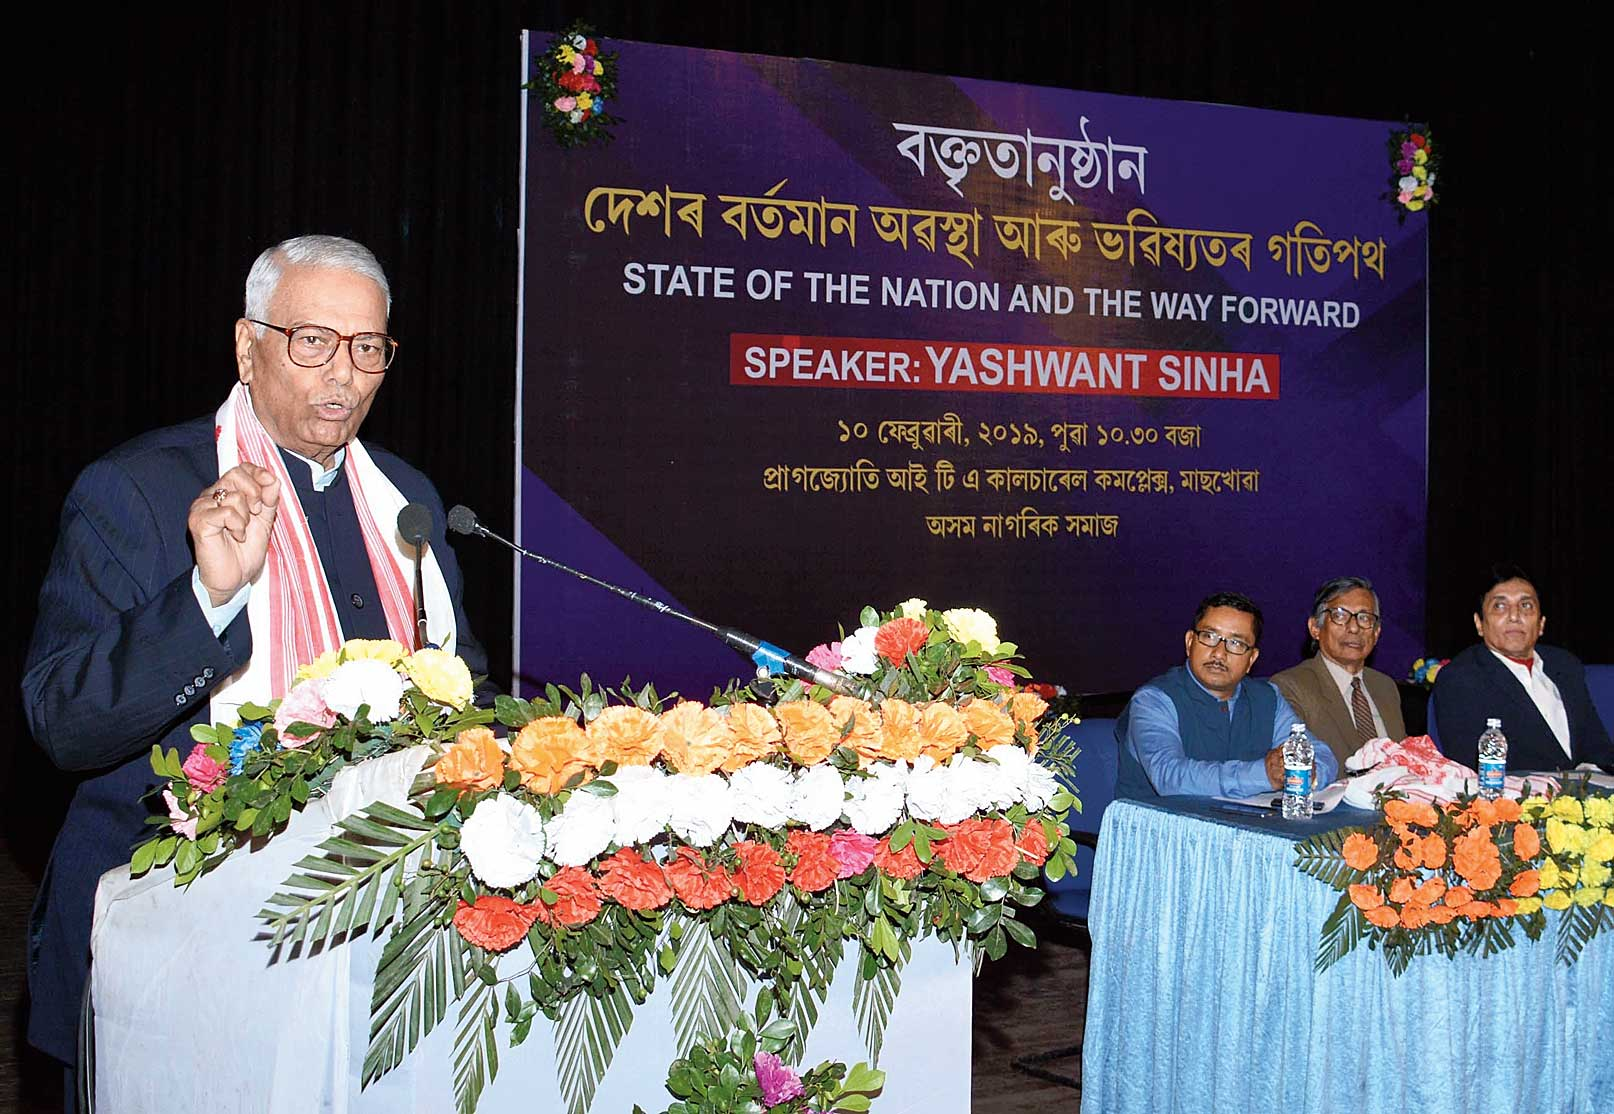 Yashwant Sinha at the event in Guwahati on Sunday.